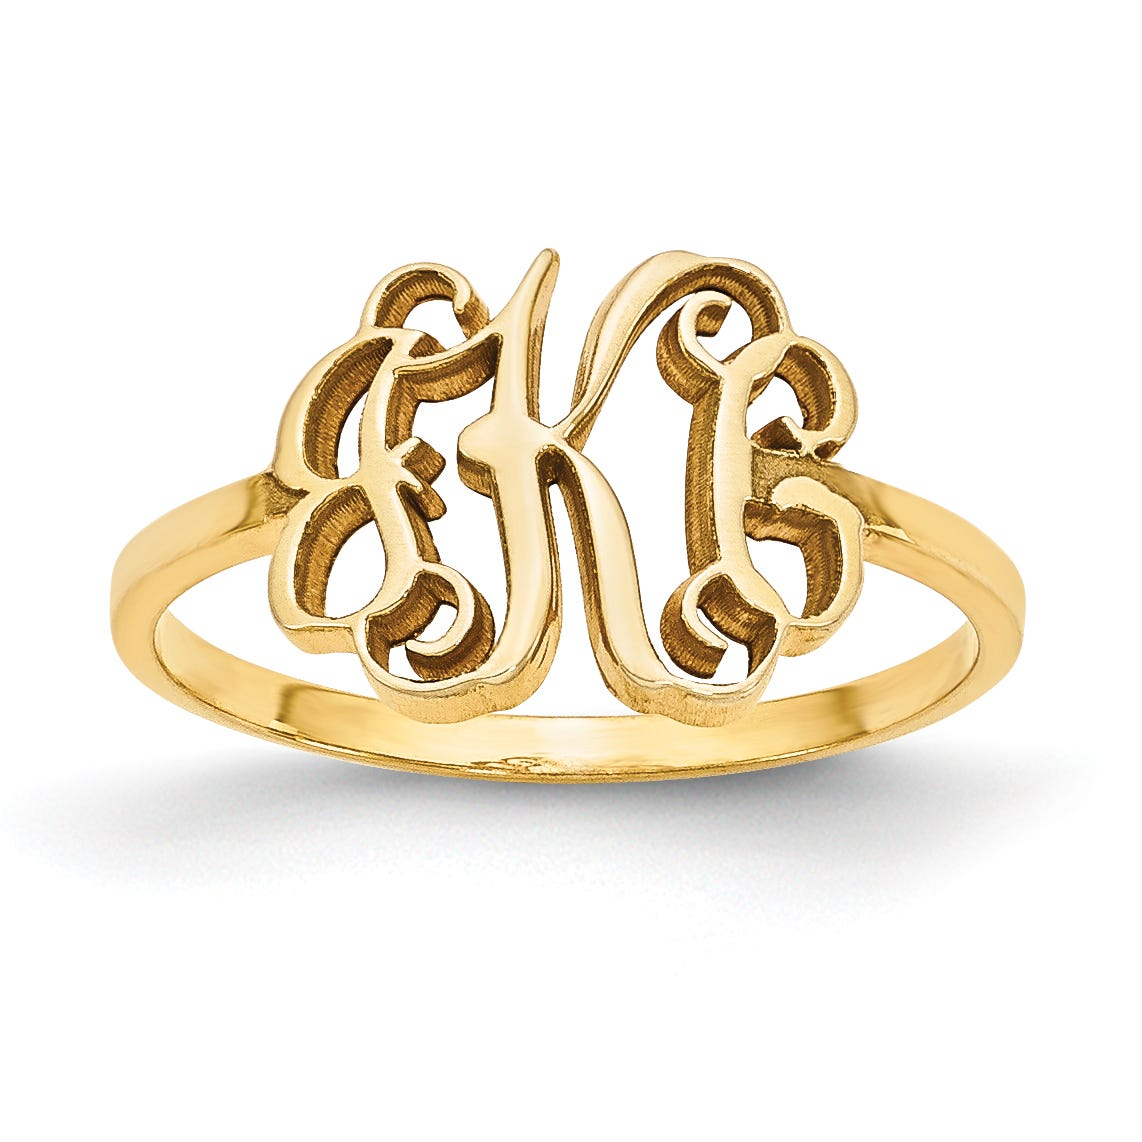 Laser Polished Monogram Ring in 10k Yellow Gold (up to 3 letters)